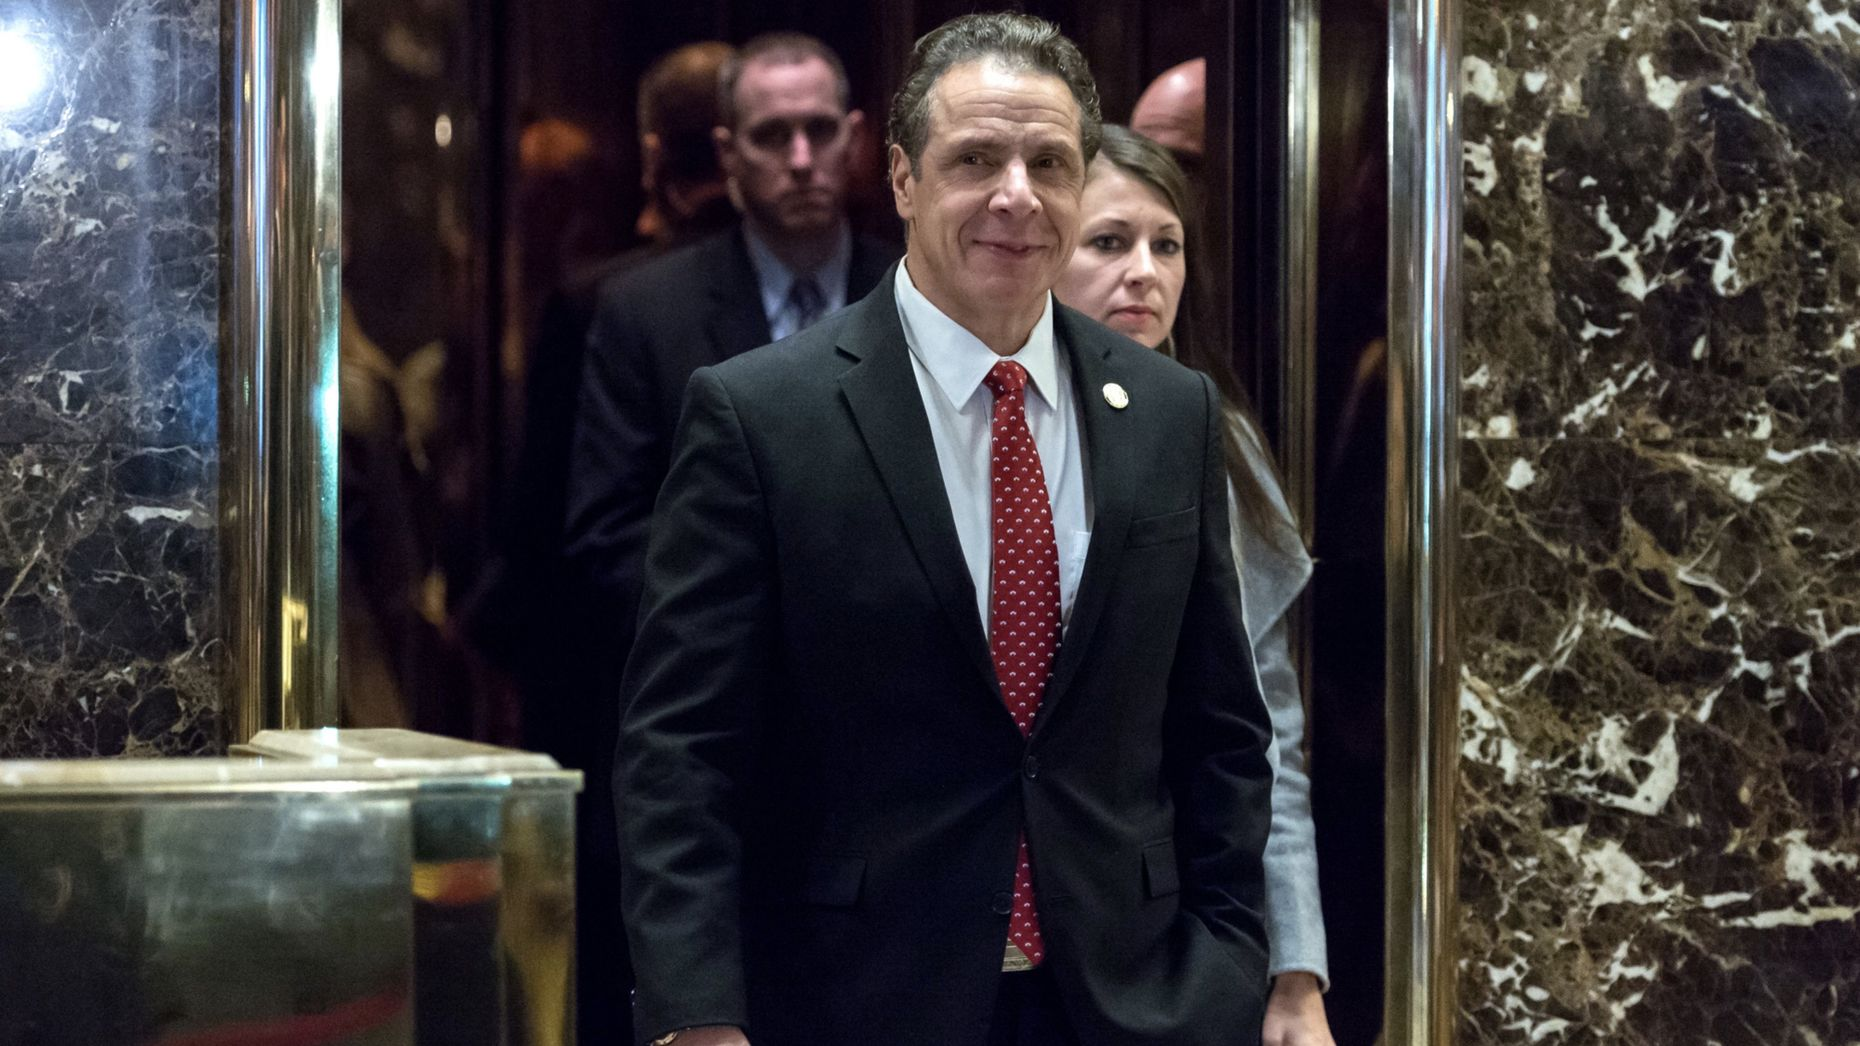 New York governor Andrew Cuomo. Photo by Bloomberg